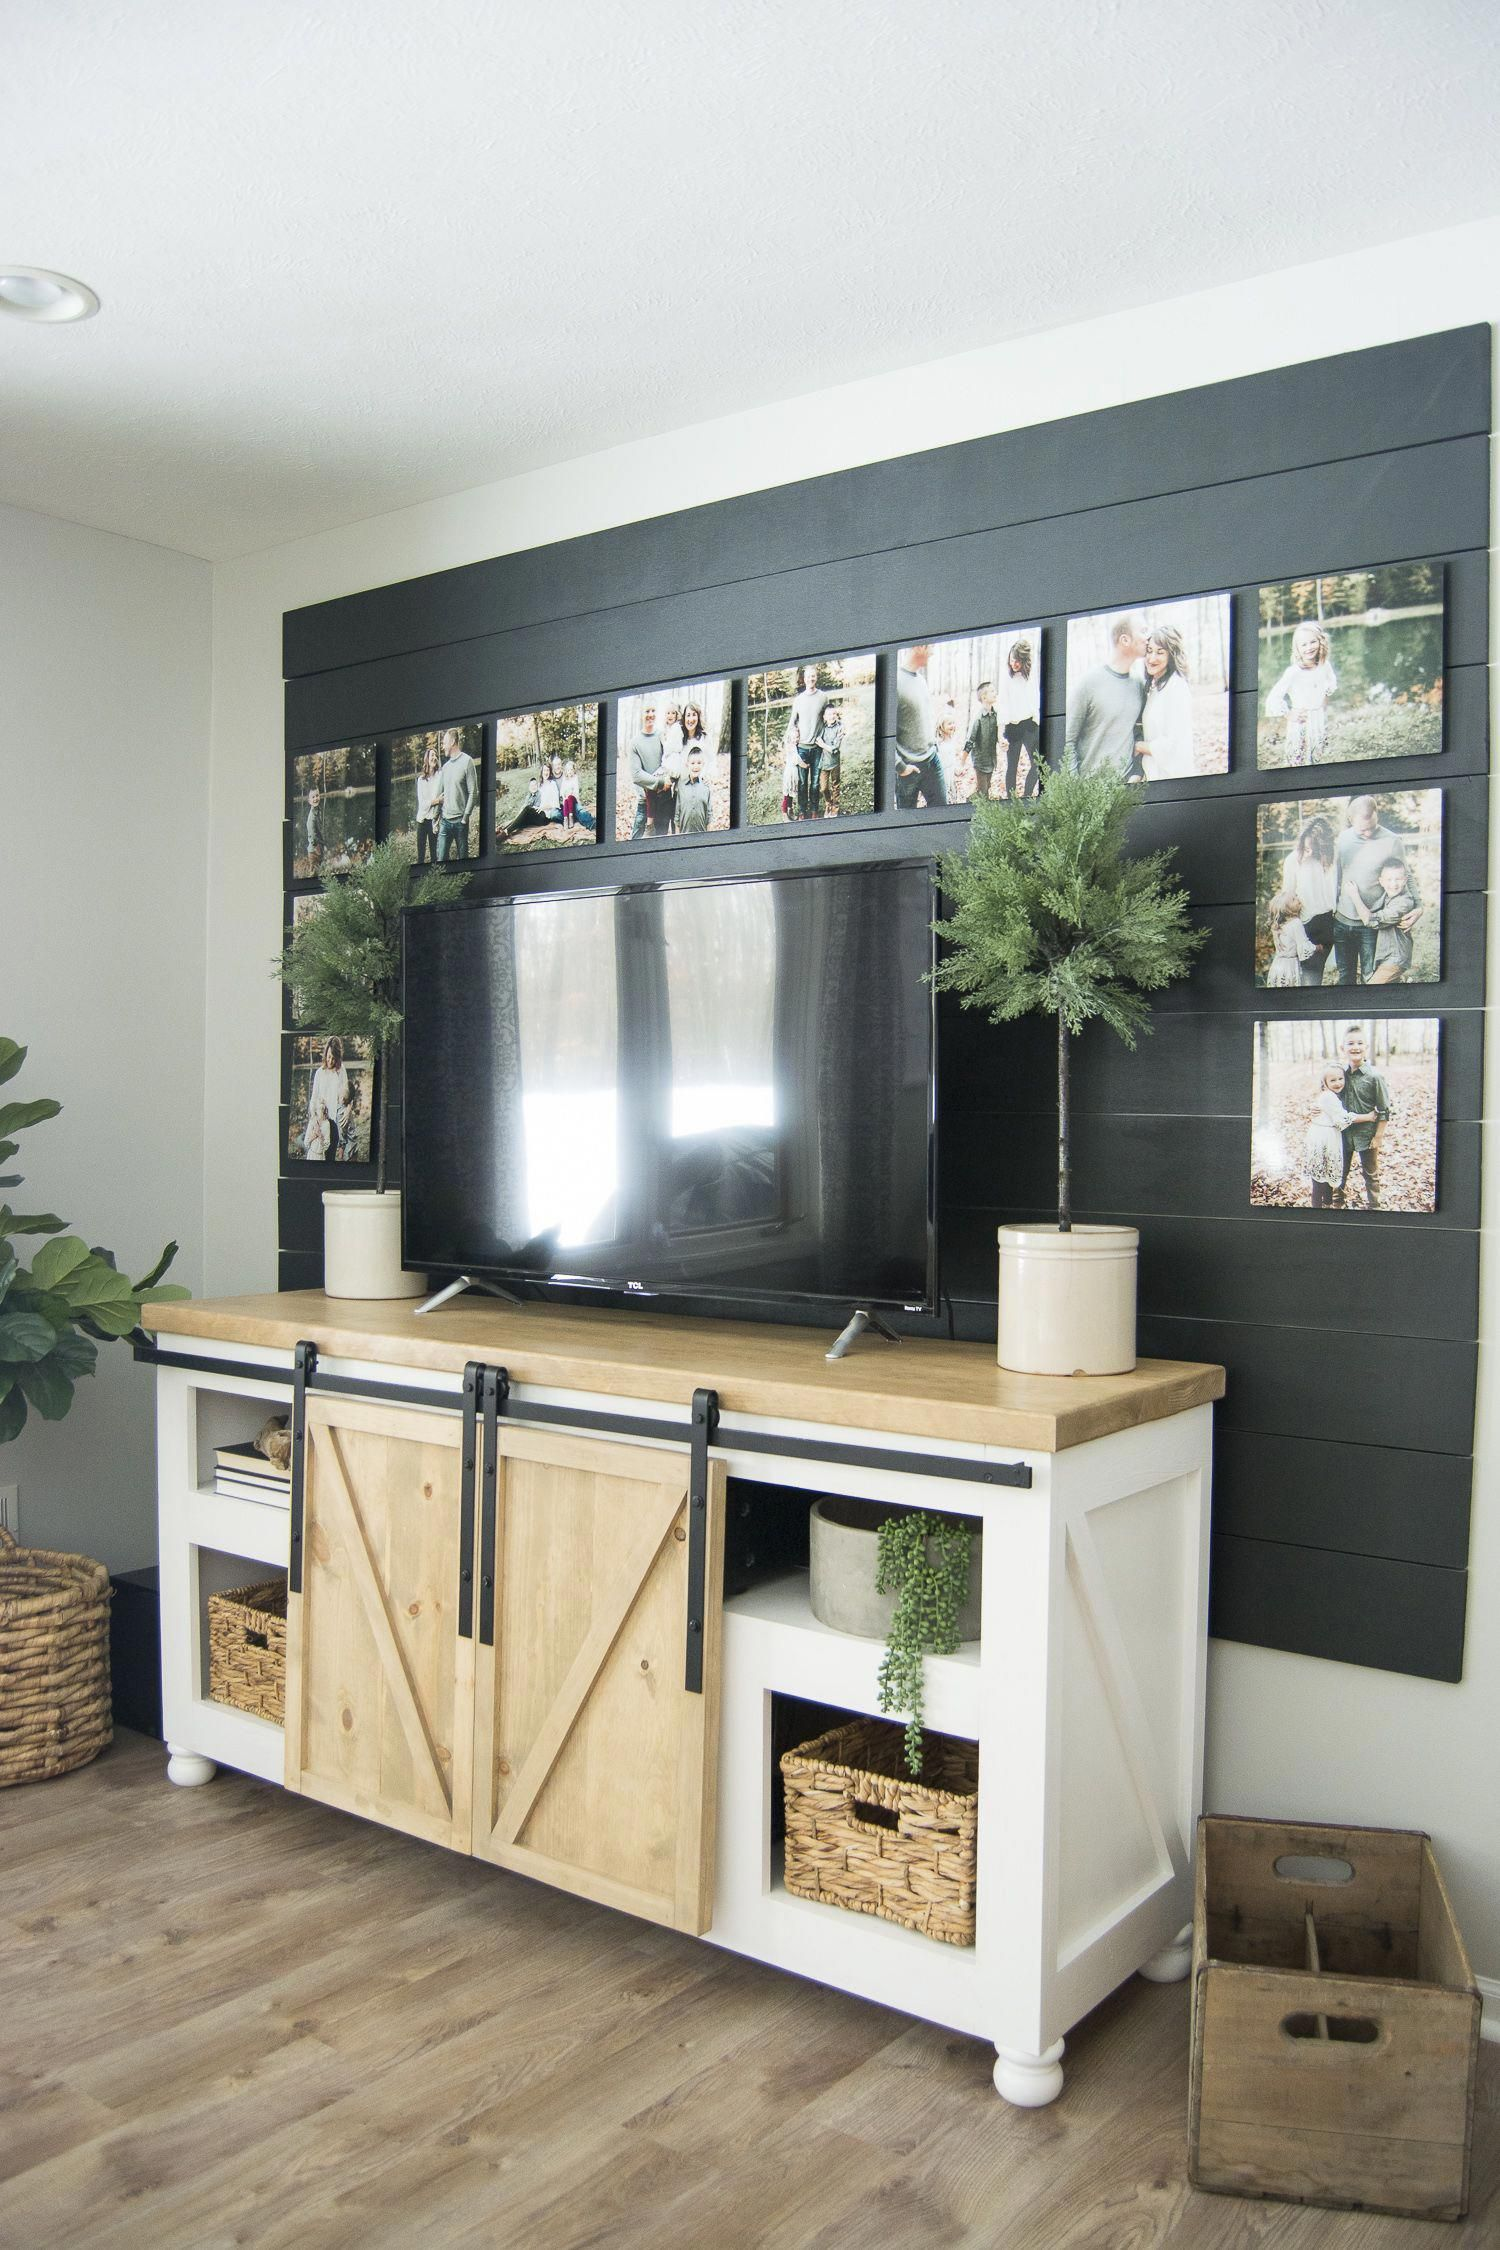 This Diy Tutorial Gives You The Basic Steps To Create A Shiplap Accent Wall Complete This Easy Accent Wall In 2020 Easy Home Decor Shiplap Accent Wall Living Room Tv